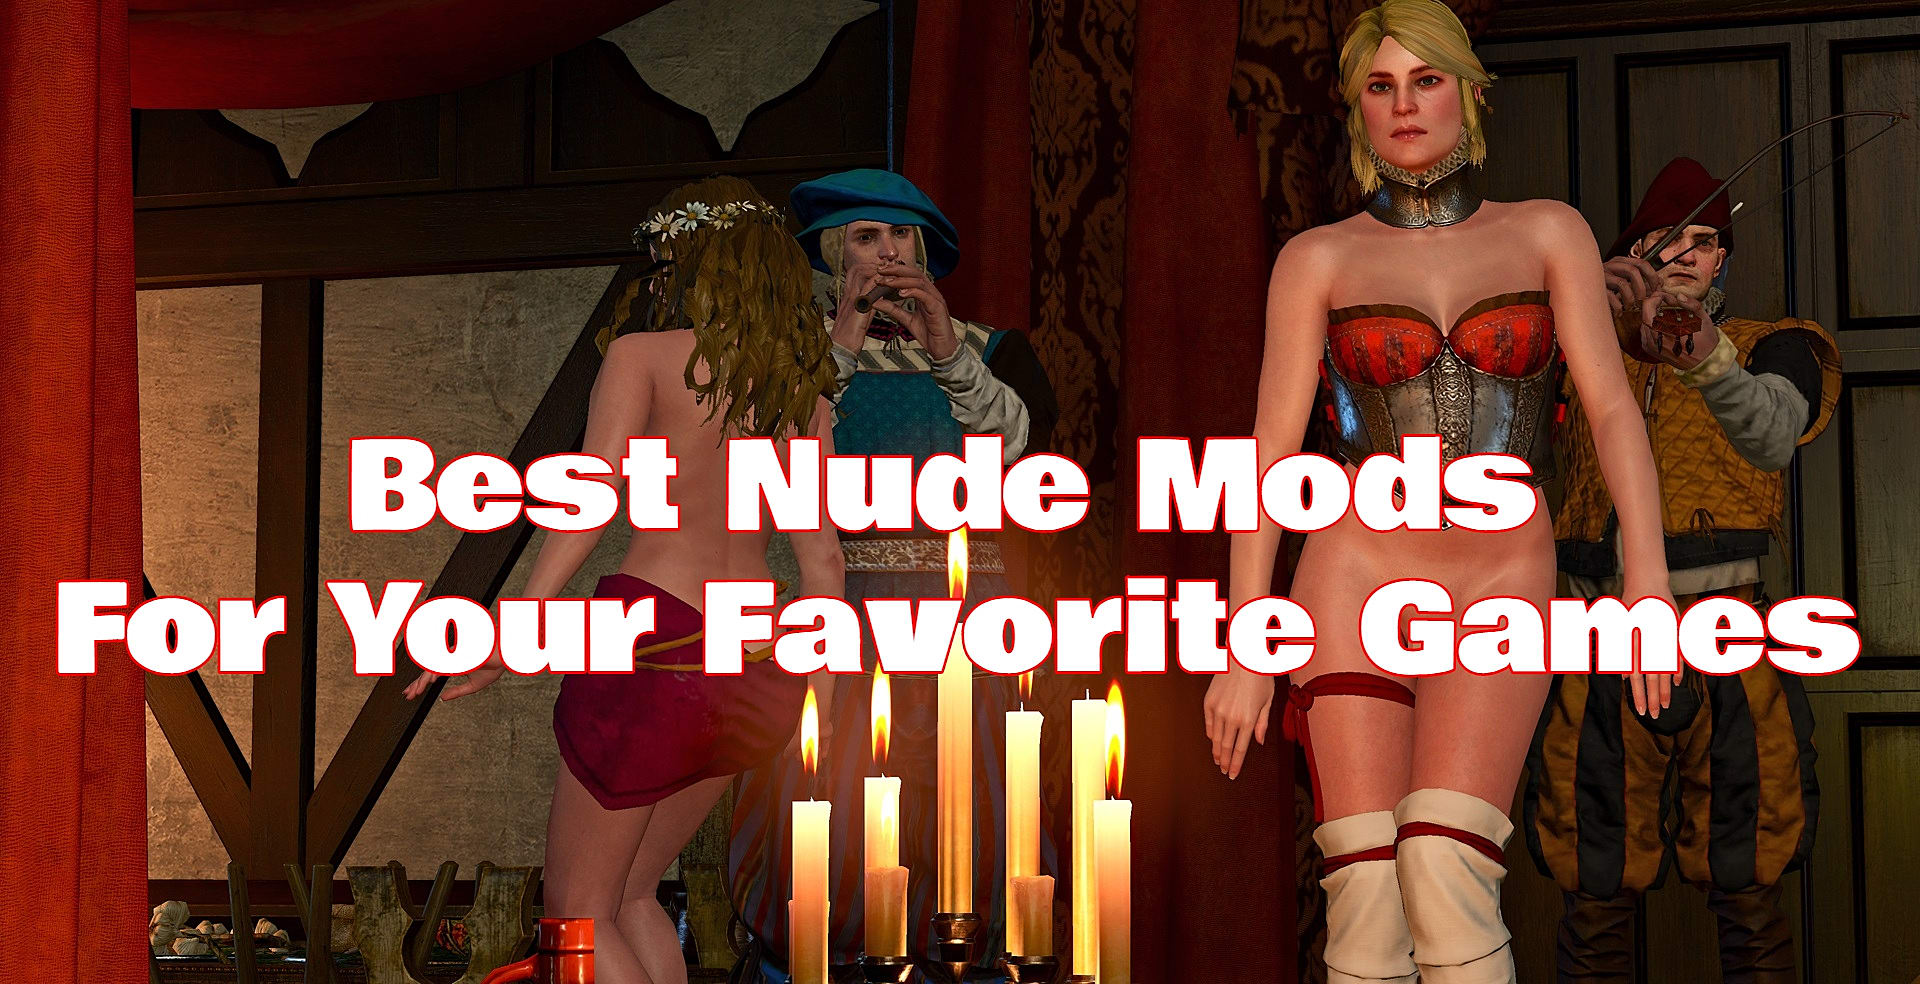 Adult Pornographic Games 11 more nsfw nude mods from your favorite games